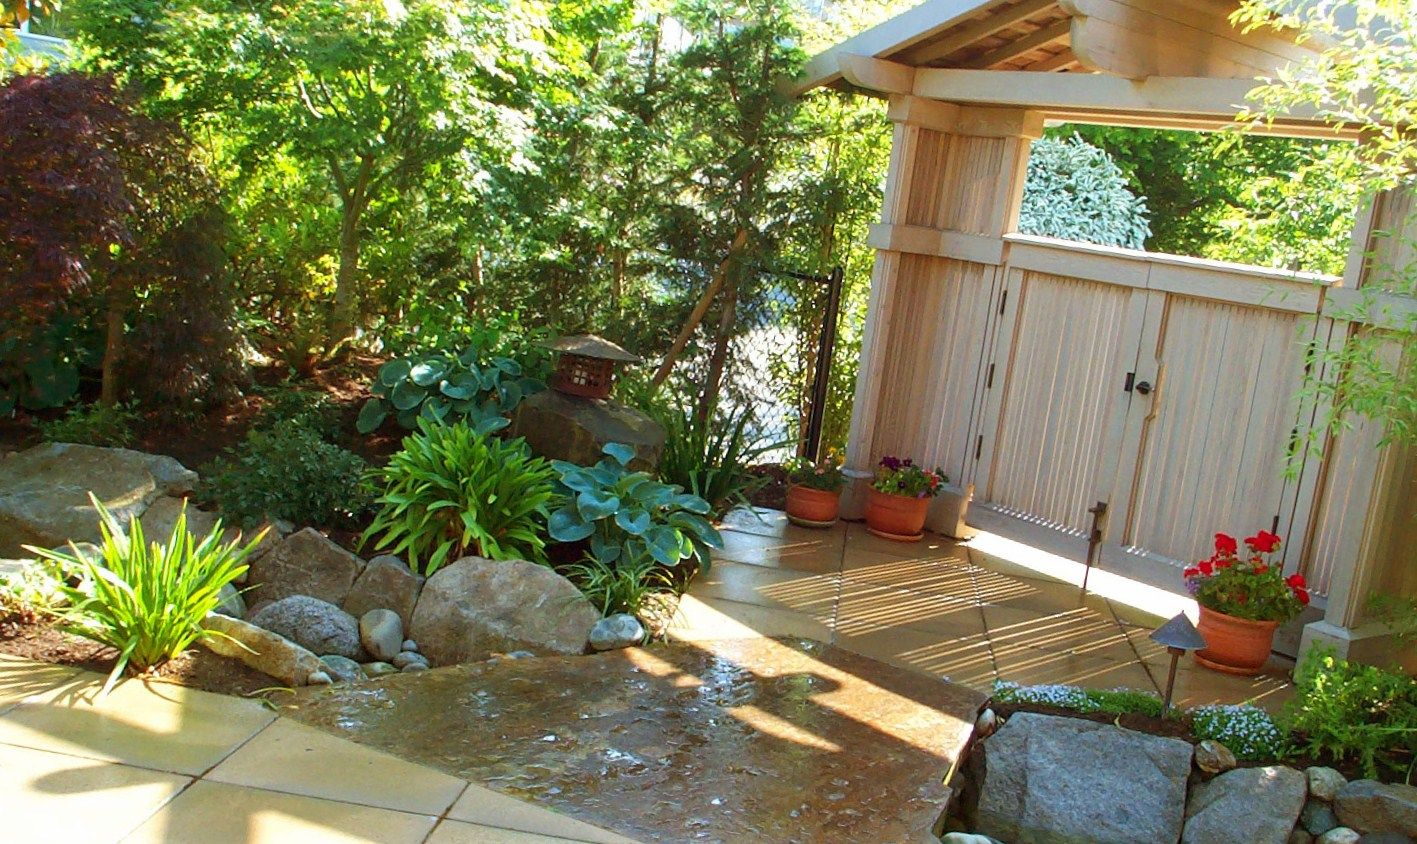 Landscaping ideas for small areas patio gardening ideas for Small area planting ideas